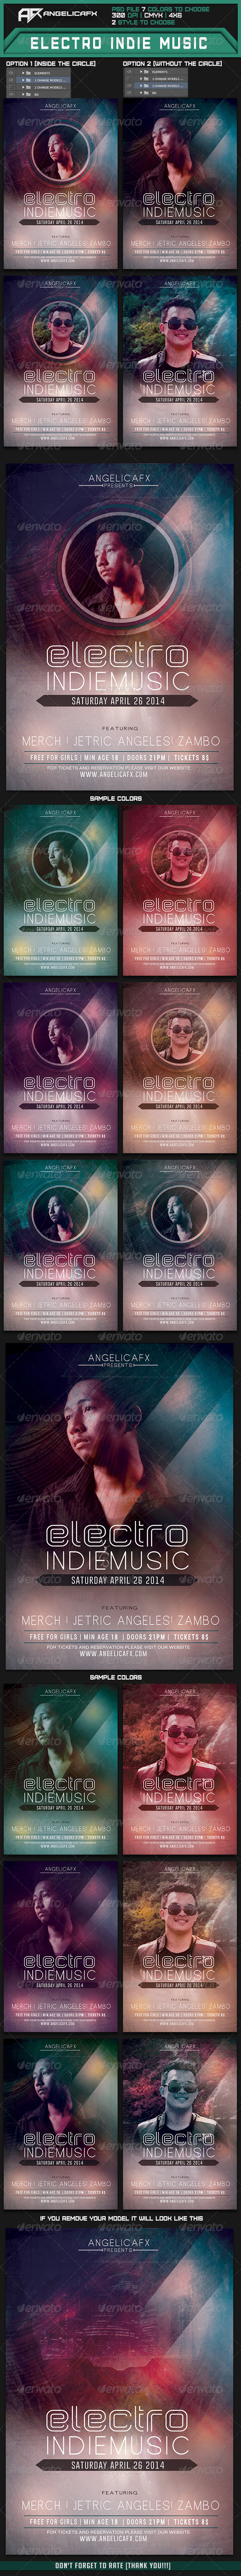 Electro Indie Music Flyer Template - Flyers Print Templates